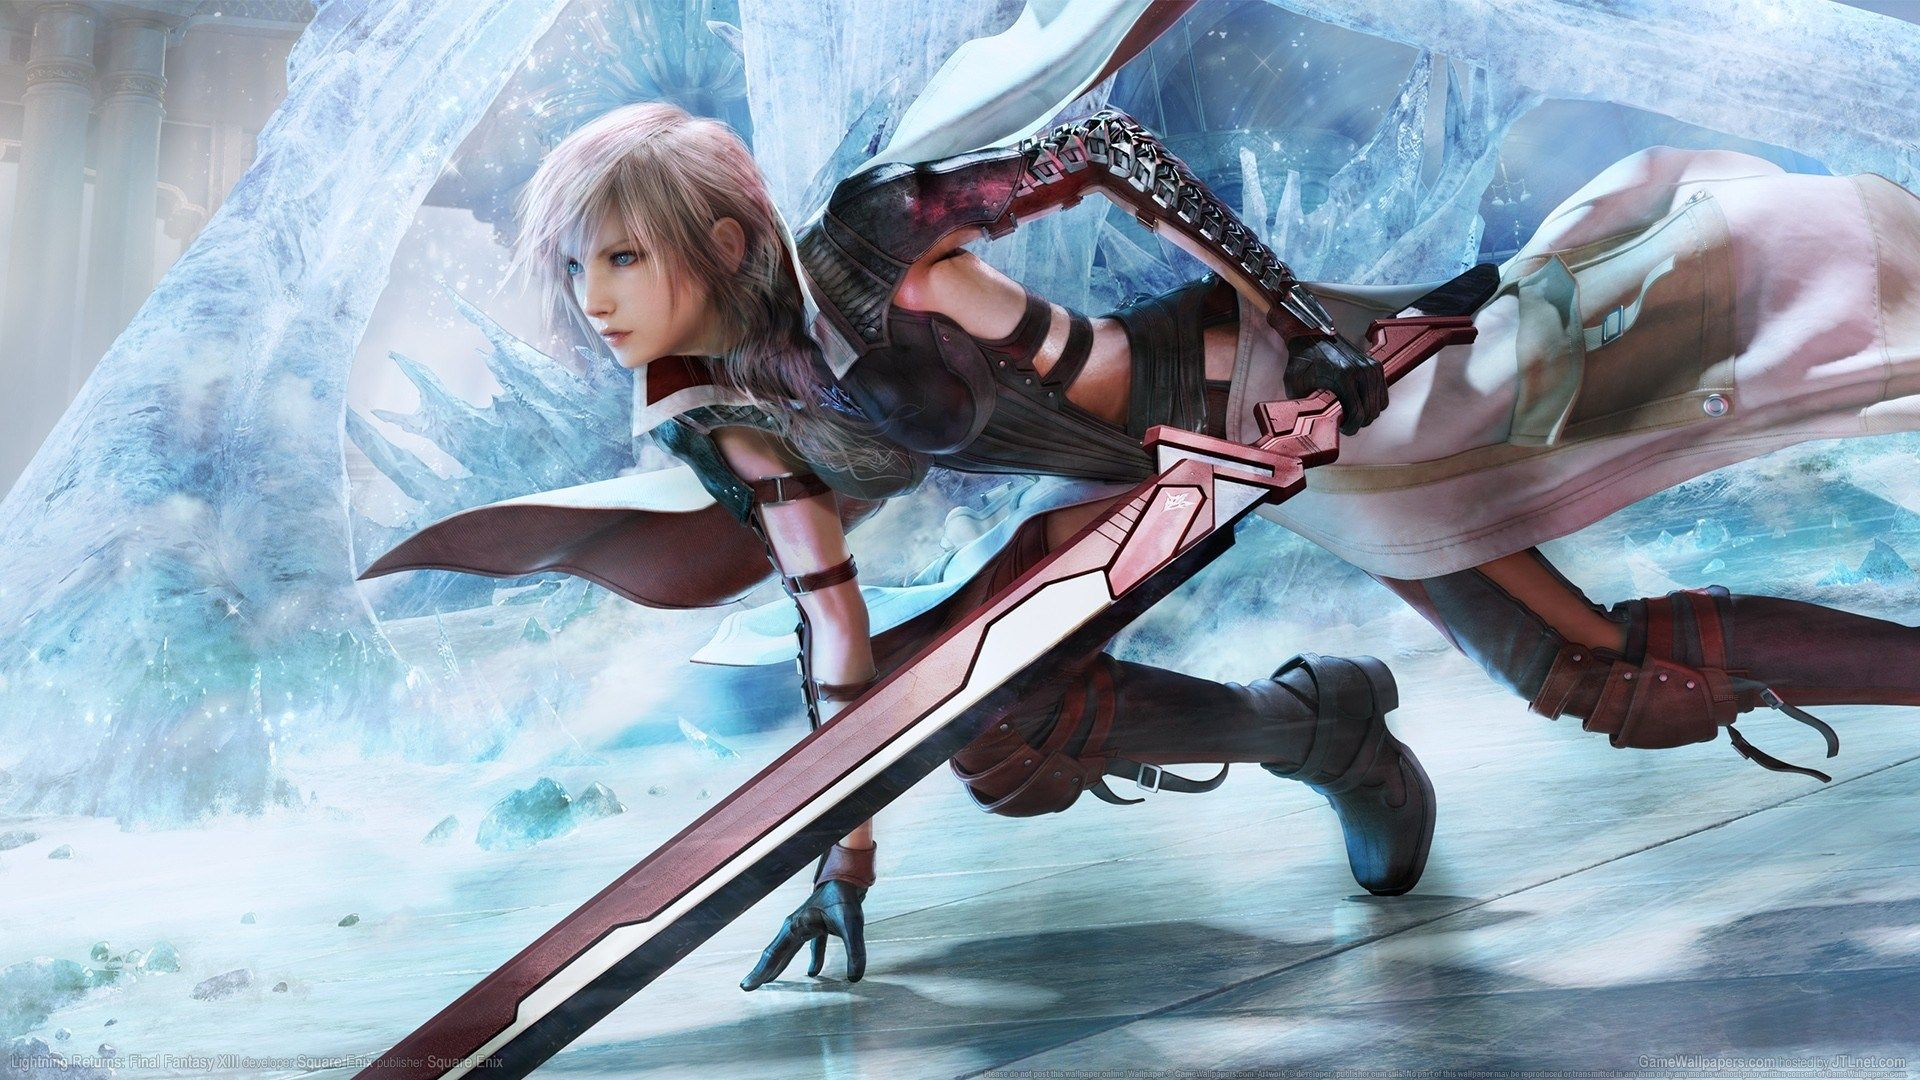 lightning returns final fantasy xiii photography wallpaper free